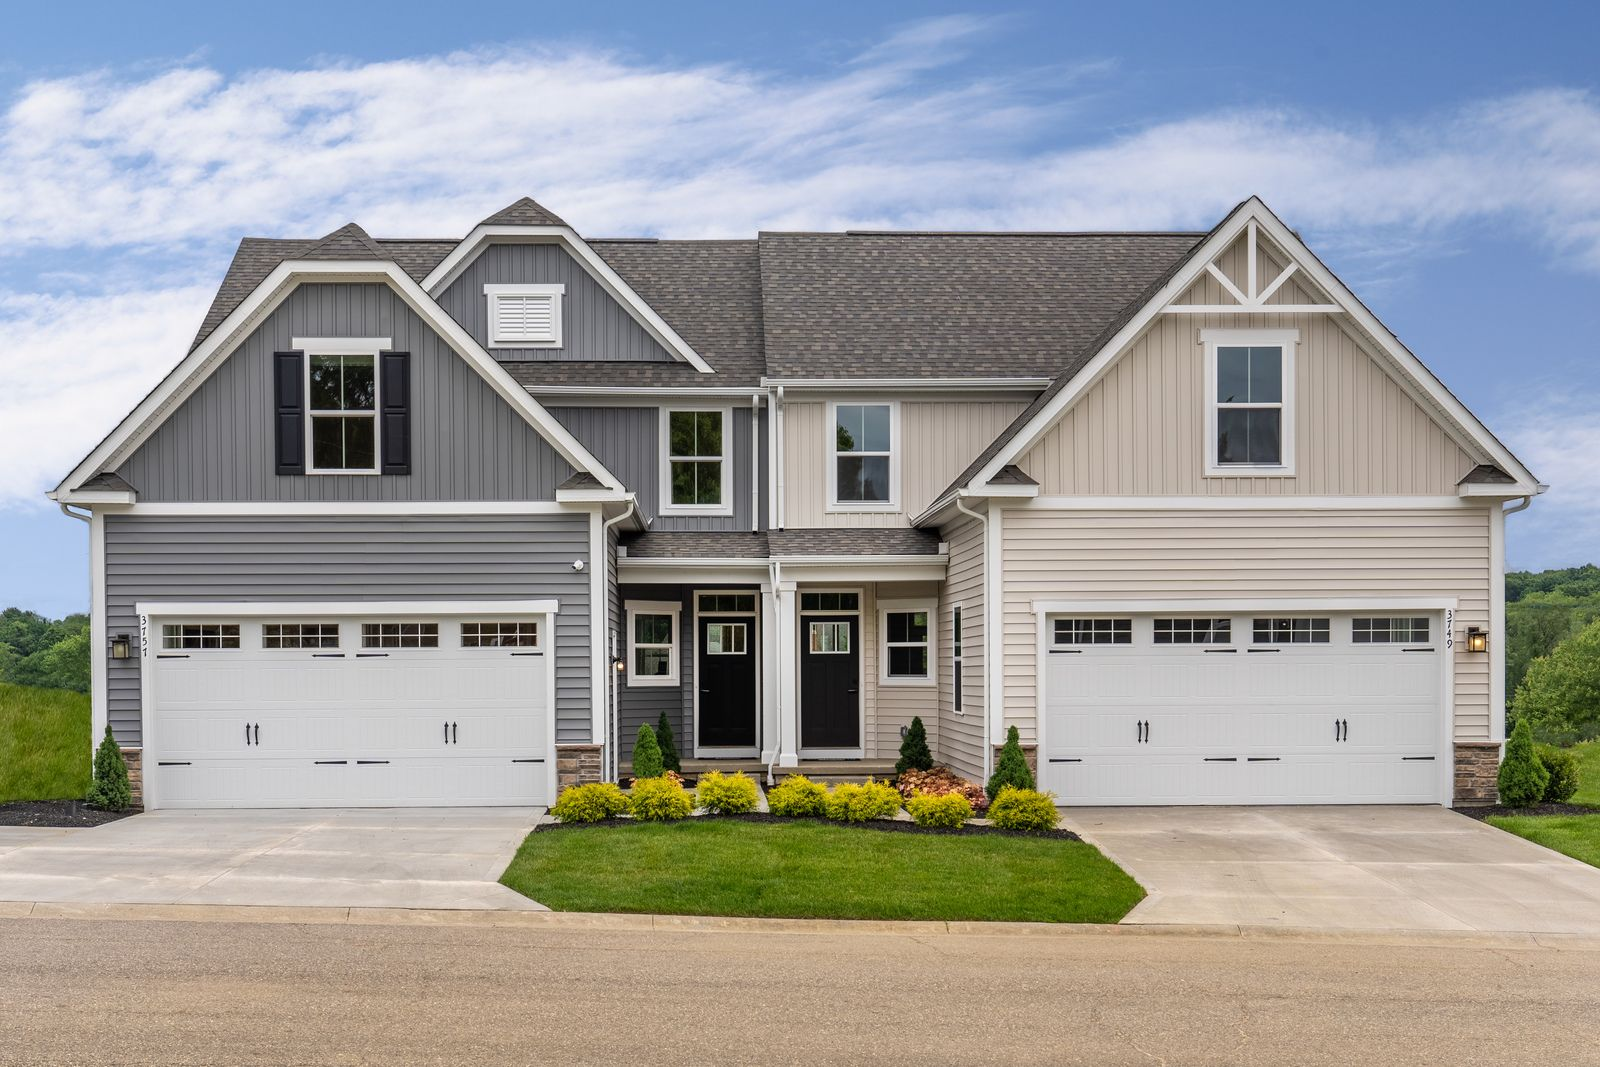 WELCOME TO BIG ELK 55+ VILLAS:The lowest-priced new homes with first-floor living and a 2-car garage, future pool and clubhouse, less than 1 mile from Route 1 and healthcare.Click here to schedule a visit!